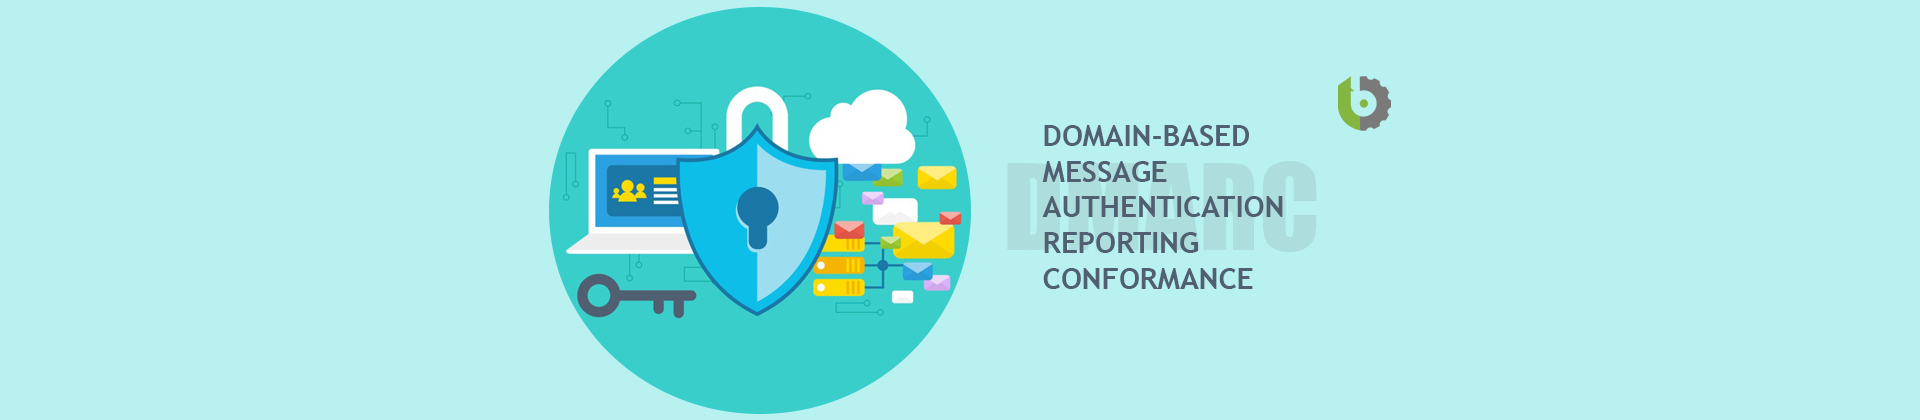 Domain-based Message Authentication, Reporting, and Conformance (DMARC)